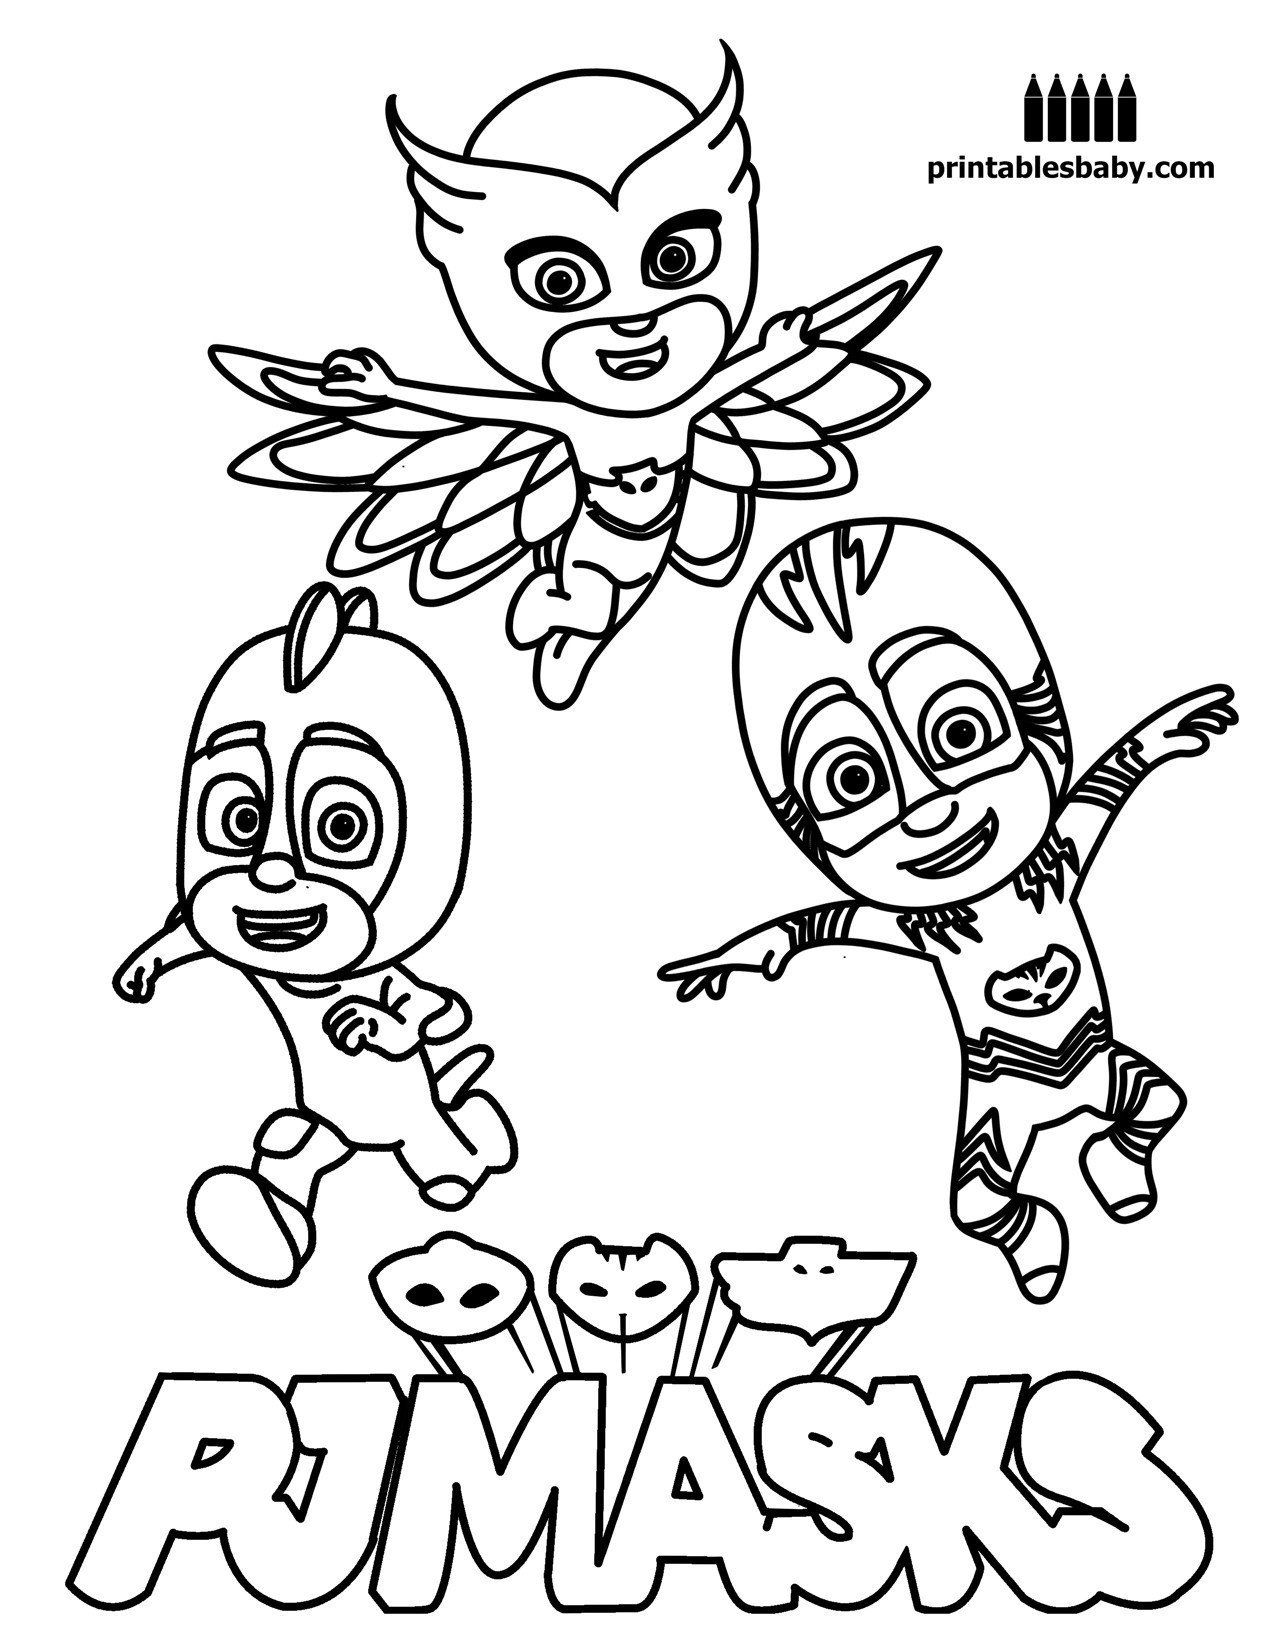 Pj Mask Coloring Pages Unique Pj Masks Coloring Sheets Pj Masks